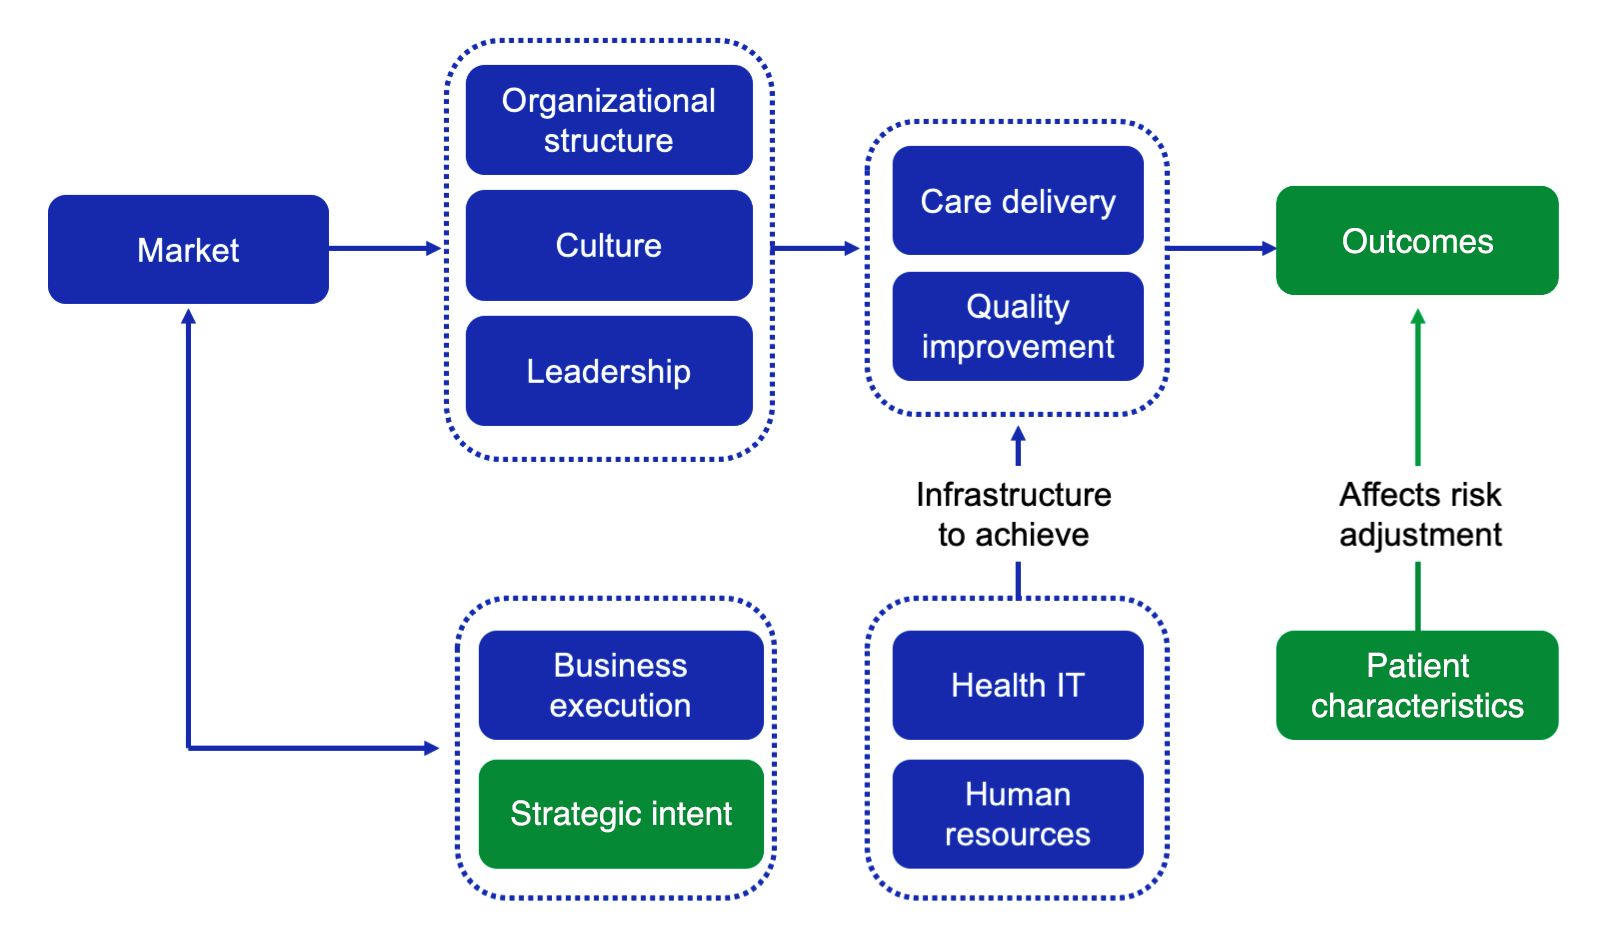 How Do Domains Affect Health System Outcomes?